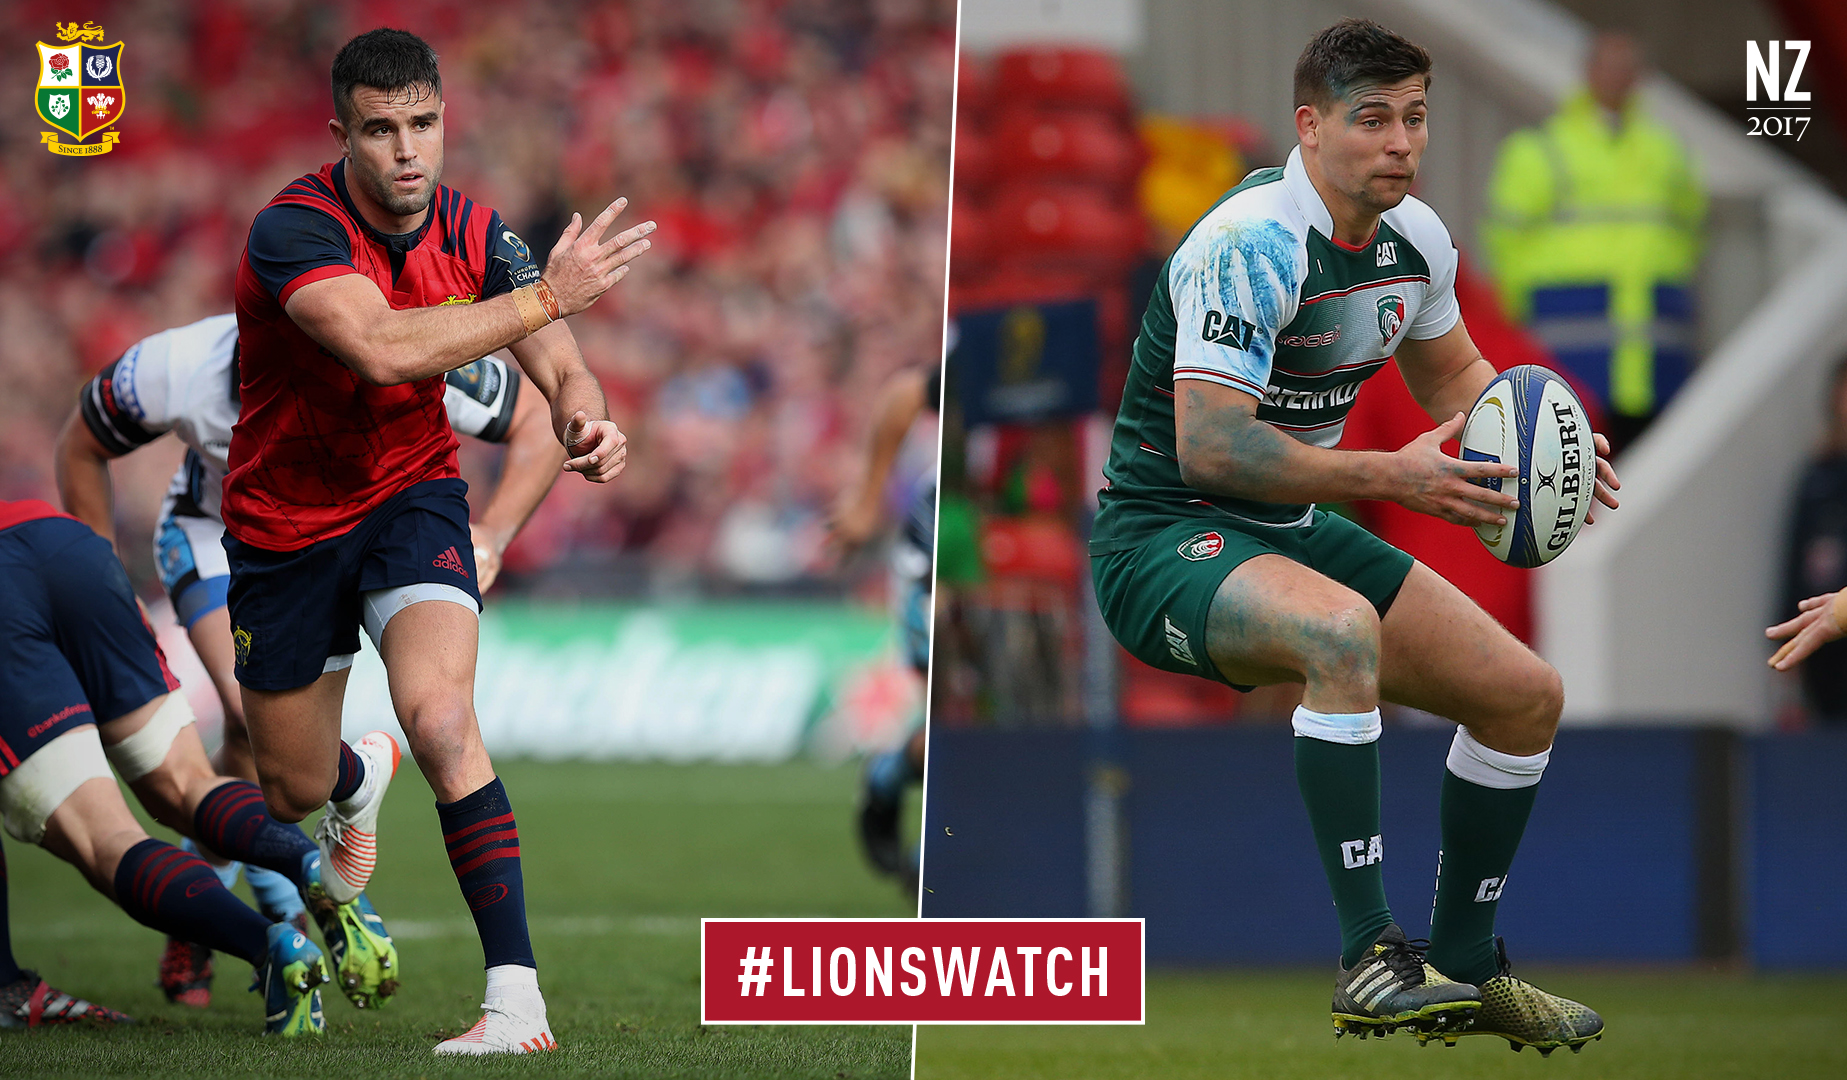 LionsWatch: Youngs and Murray match-up highlights a busy European weekend